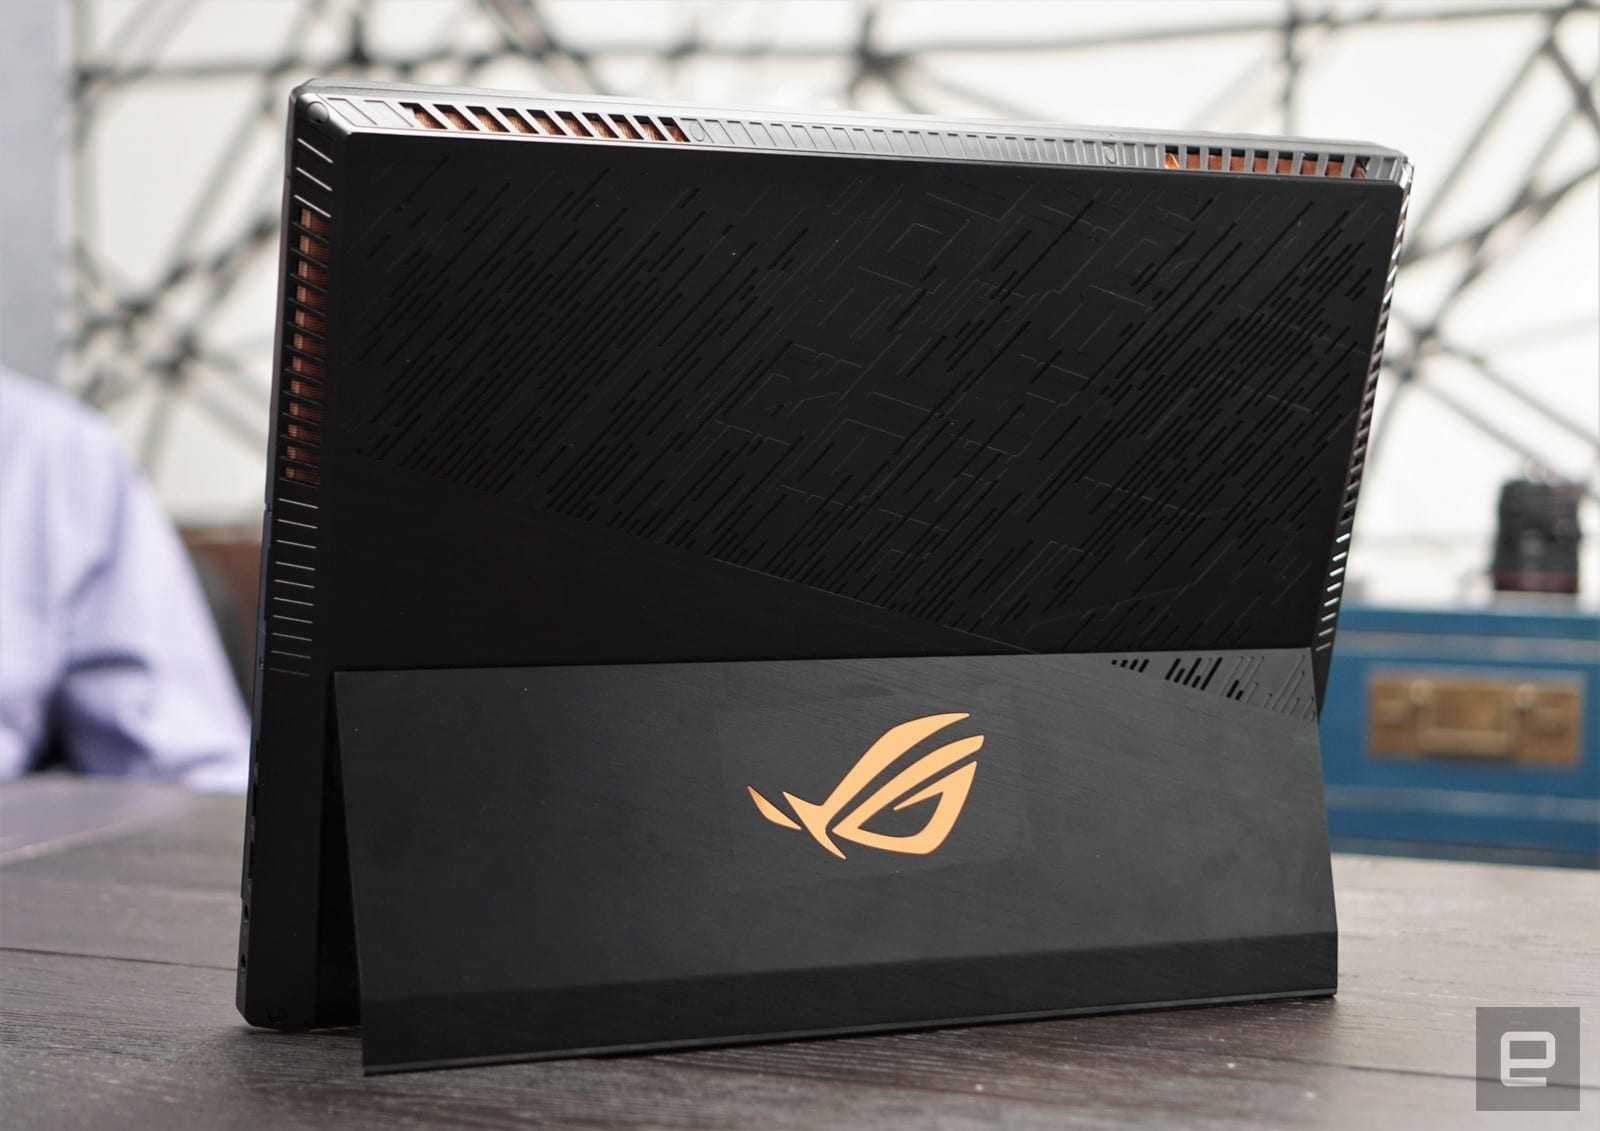 You've never seen a gaming laptop like the ASUS ROG Mothership